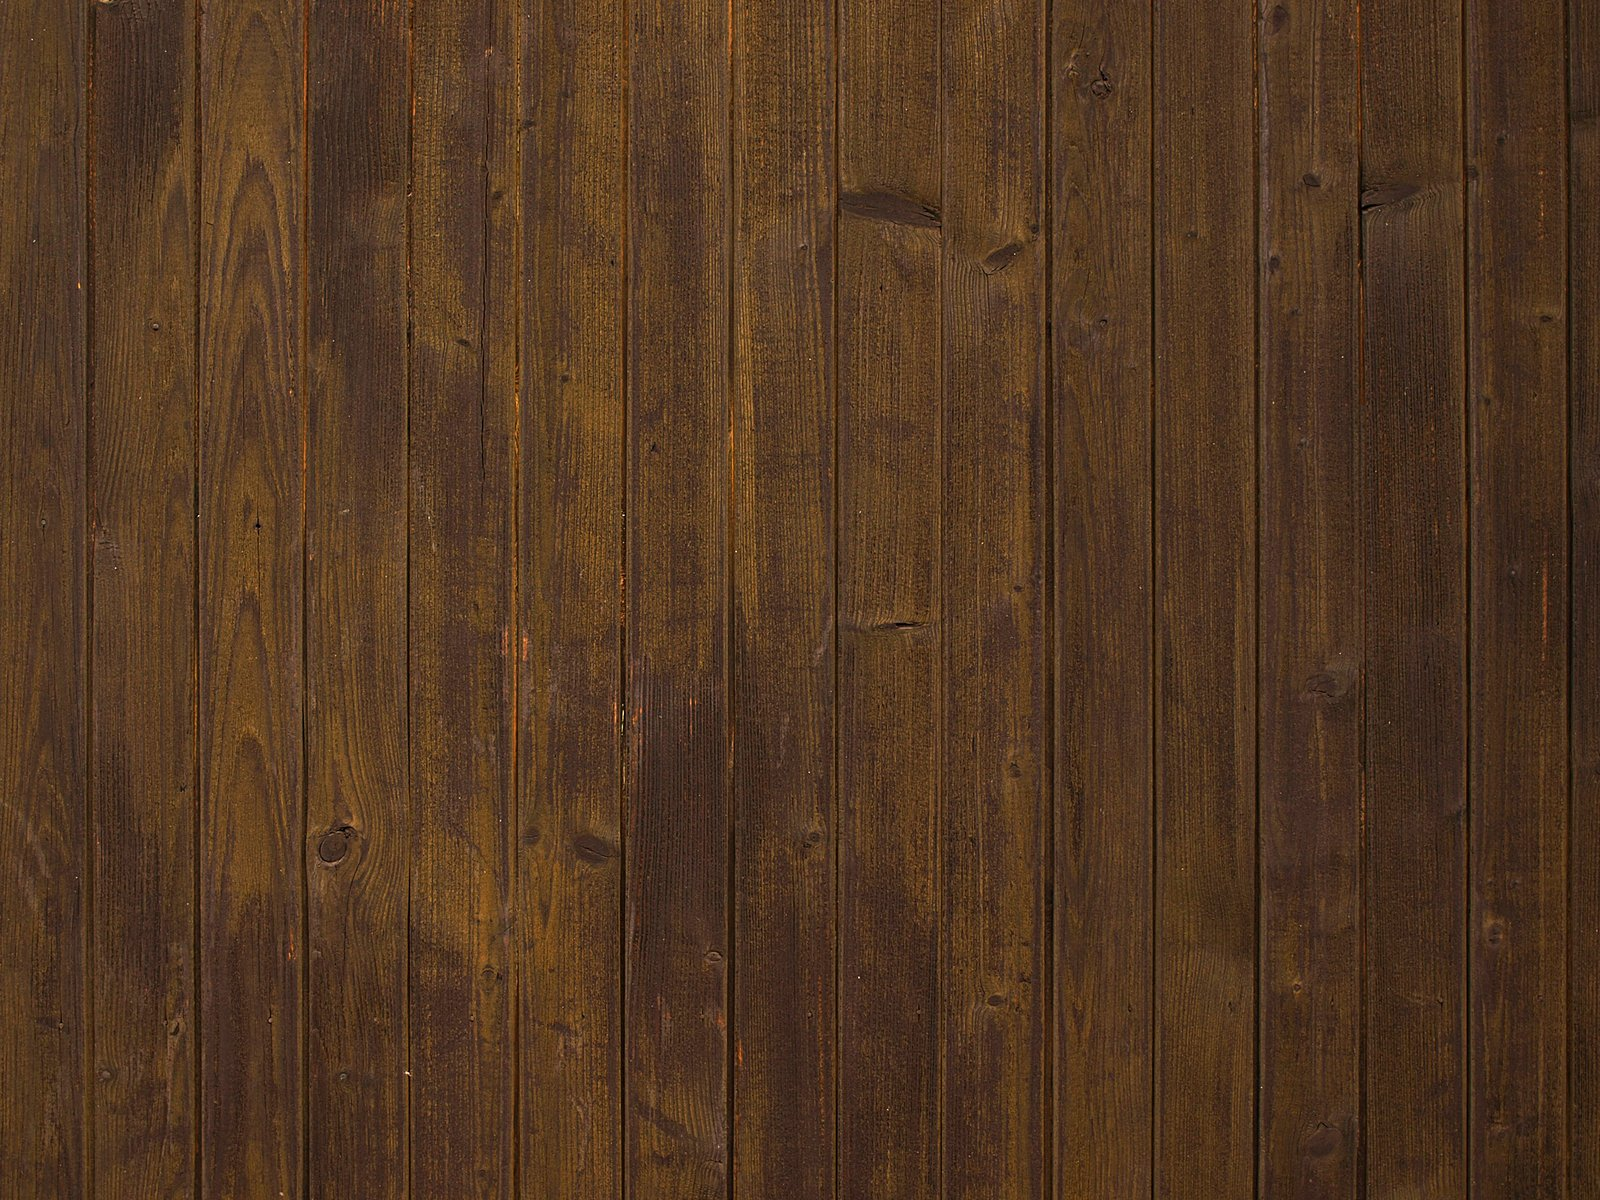 Free old wood texture stock photo freeimages free old wood texture stock photo voltagebd Gallery